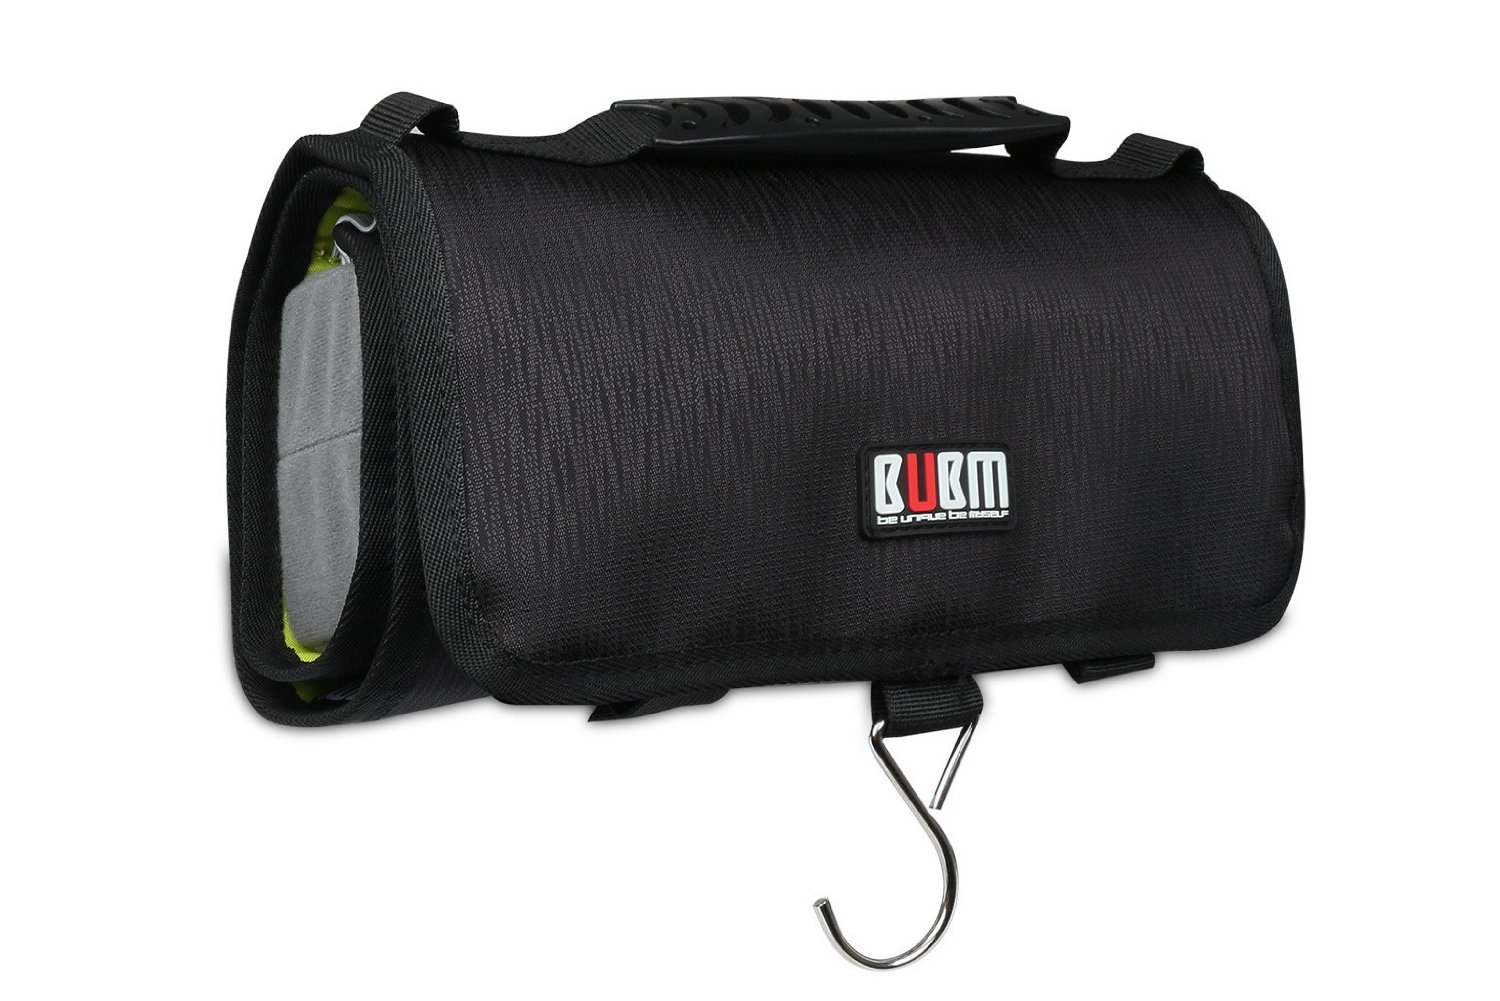 Bubm Rolling Portable Shockproof Carrying Case For Gopro